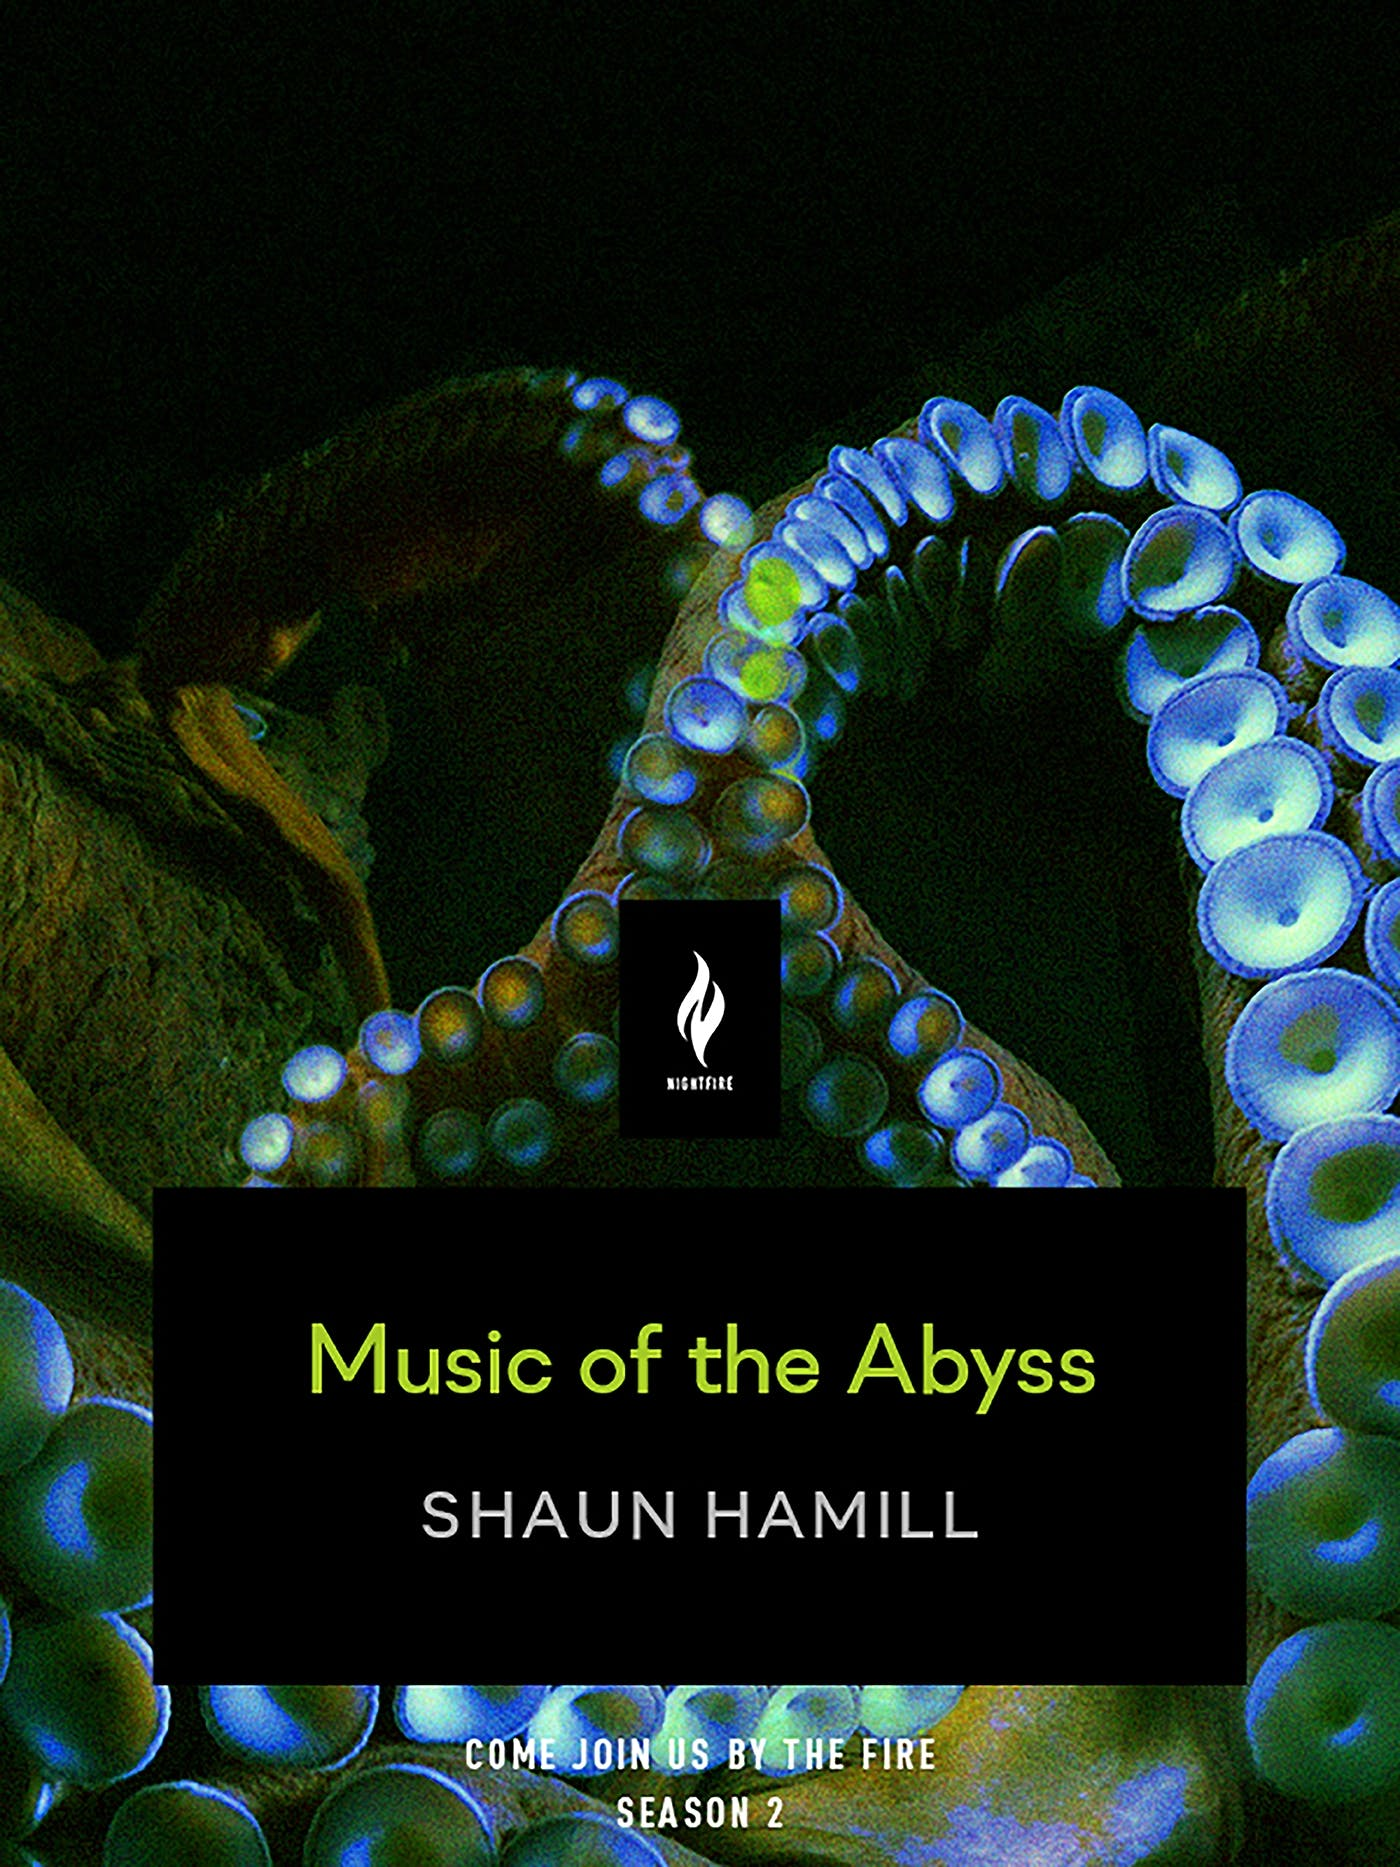 Image of Music of the Abyss